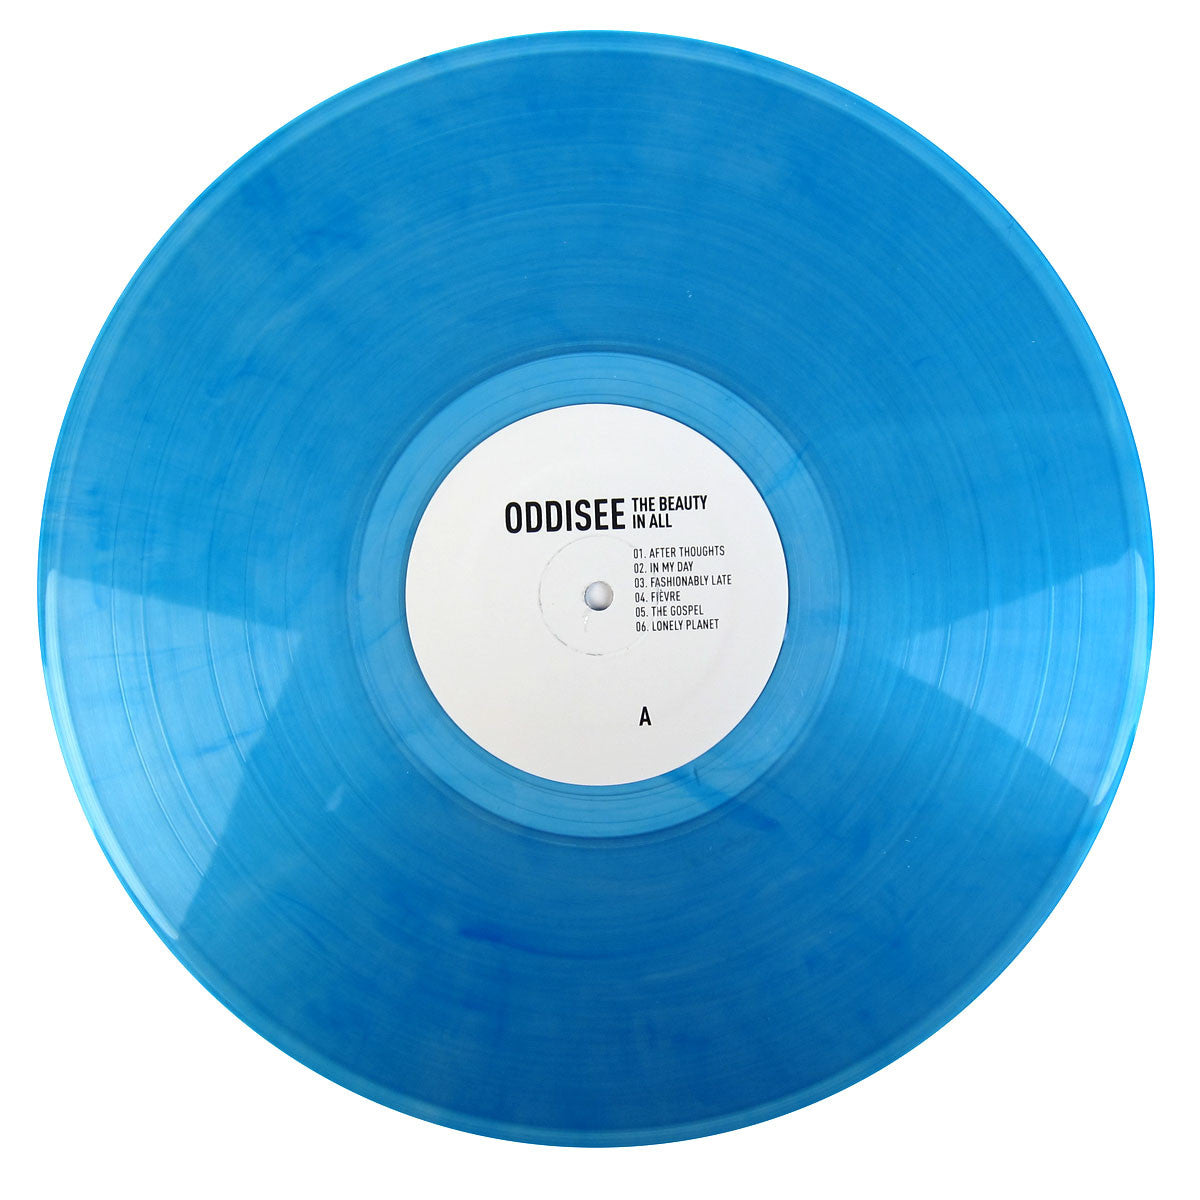 Oddisee: The Beauty In All (Free MP3 + Colored Vinyl) LP blue